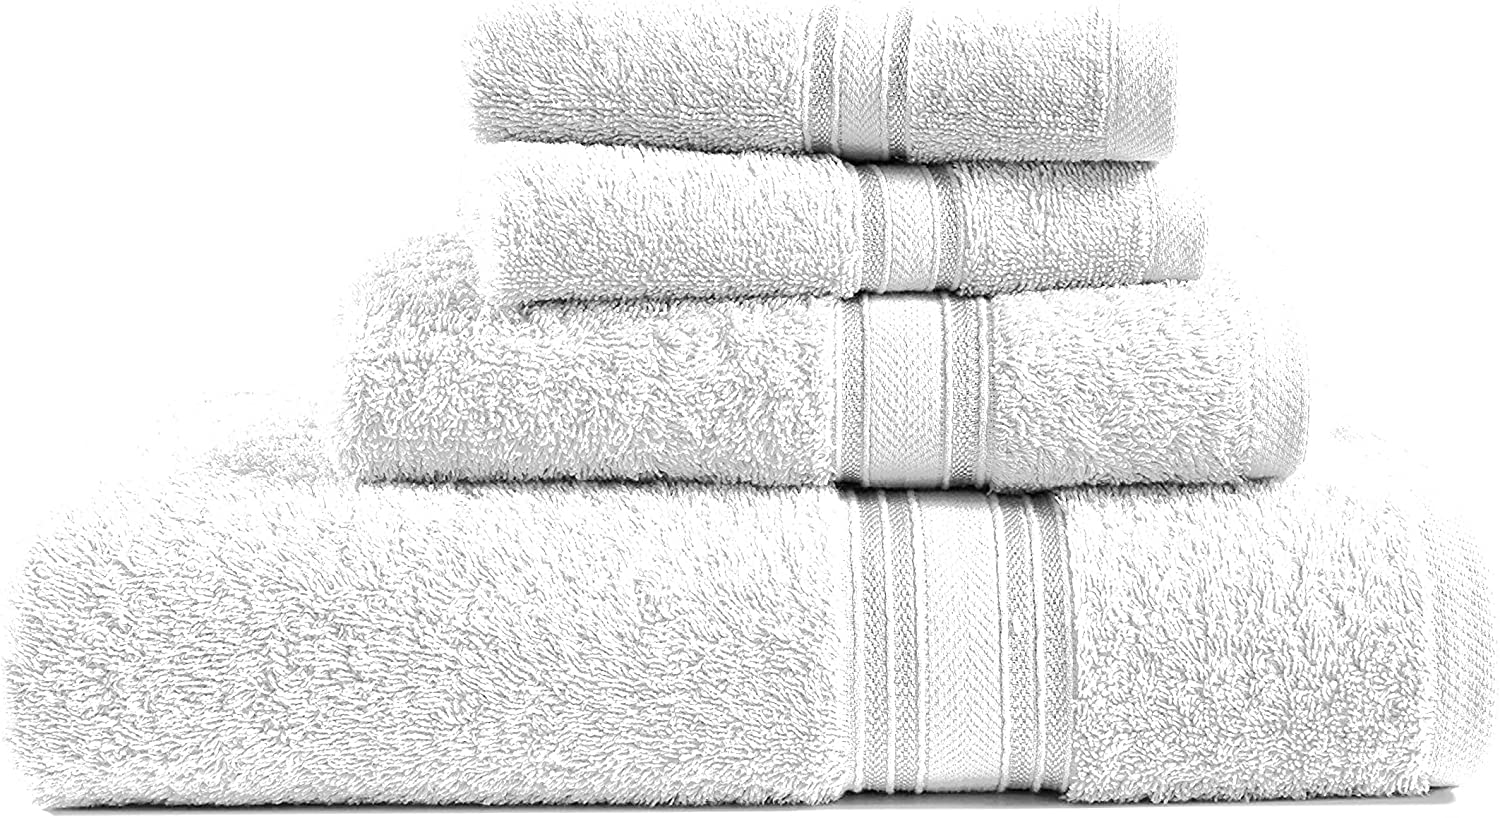 Luxurious 4 Piece White Bath Towels Set 600 GSM, 100% Combed Cotton Highly Absorbent and Quick Dry Extra Large Bath Towels, Hotel Towels (1 Bath Towel, 1 Hand Towel and 2 Washcloths) - White